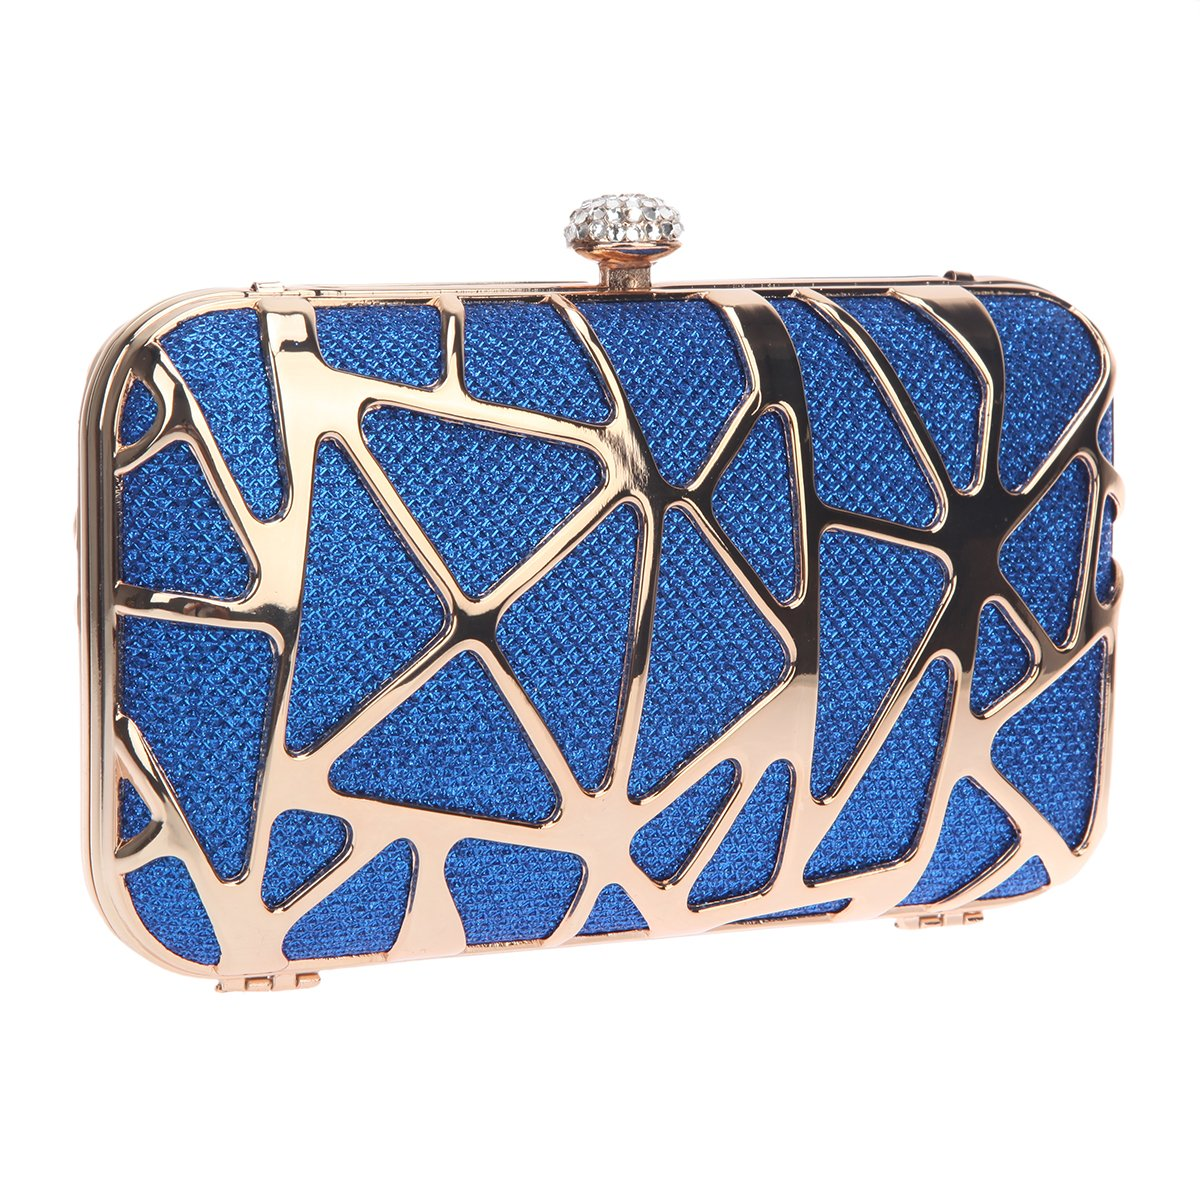 Bonjanvye Special Water Cube Box Evening Clutches Purses for Girls Blue